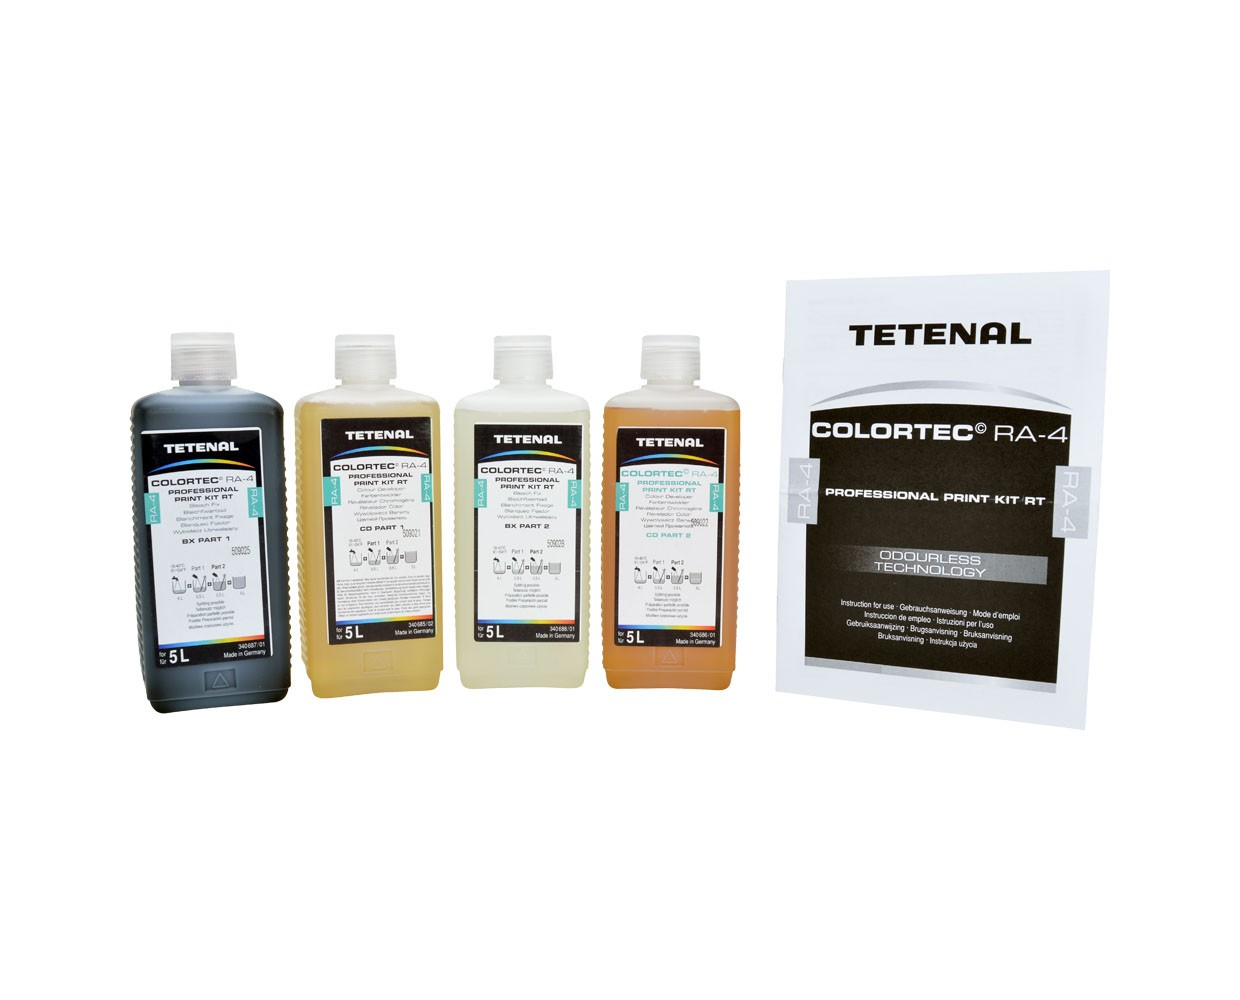 Tetenal Colortec RA-4 Prof Kit 5L